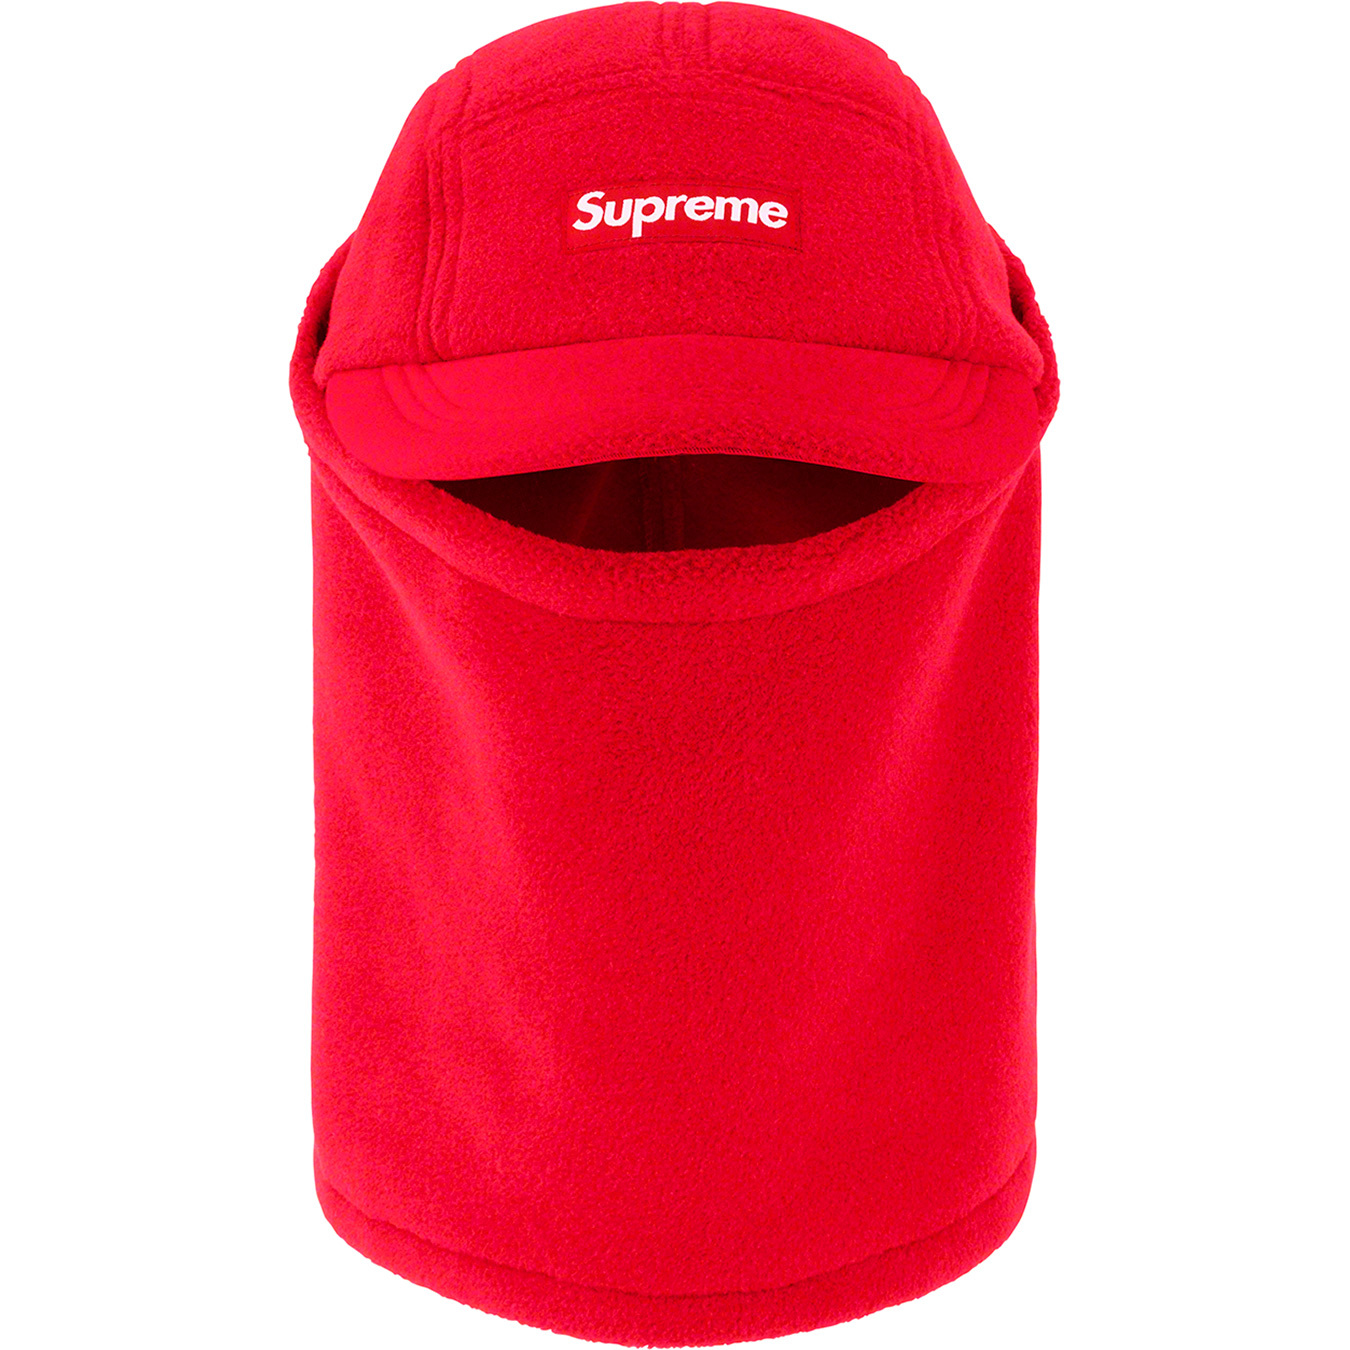 supreme-19aw-19fw-fall-winter-facemask-polartec-camp-cap